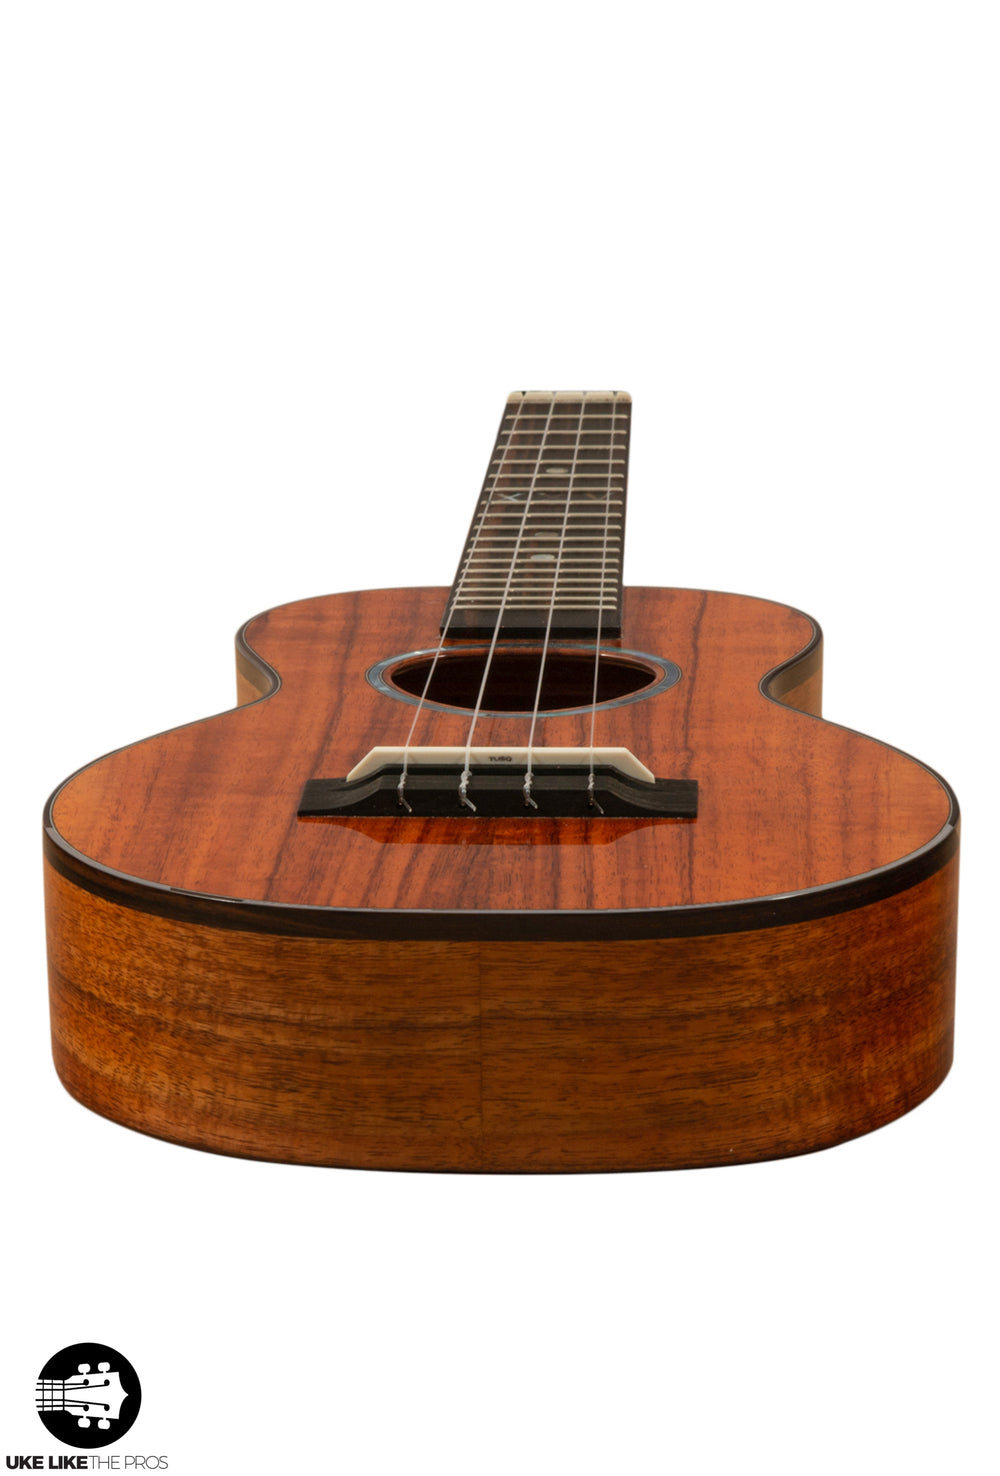 "KoAloha KCM-25 Red Label Silver Anniversary Concert Ukulele #10 Curly Koa ""Firebird"" (Only 10 Made)"